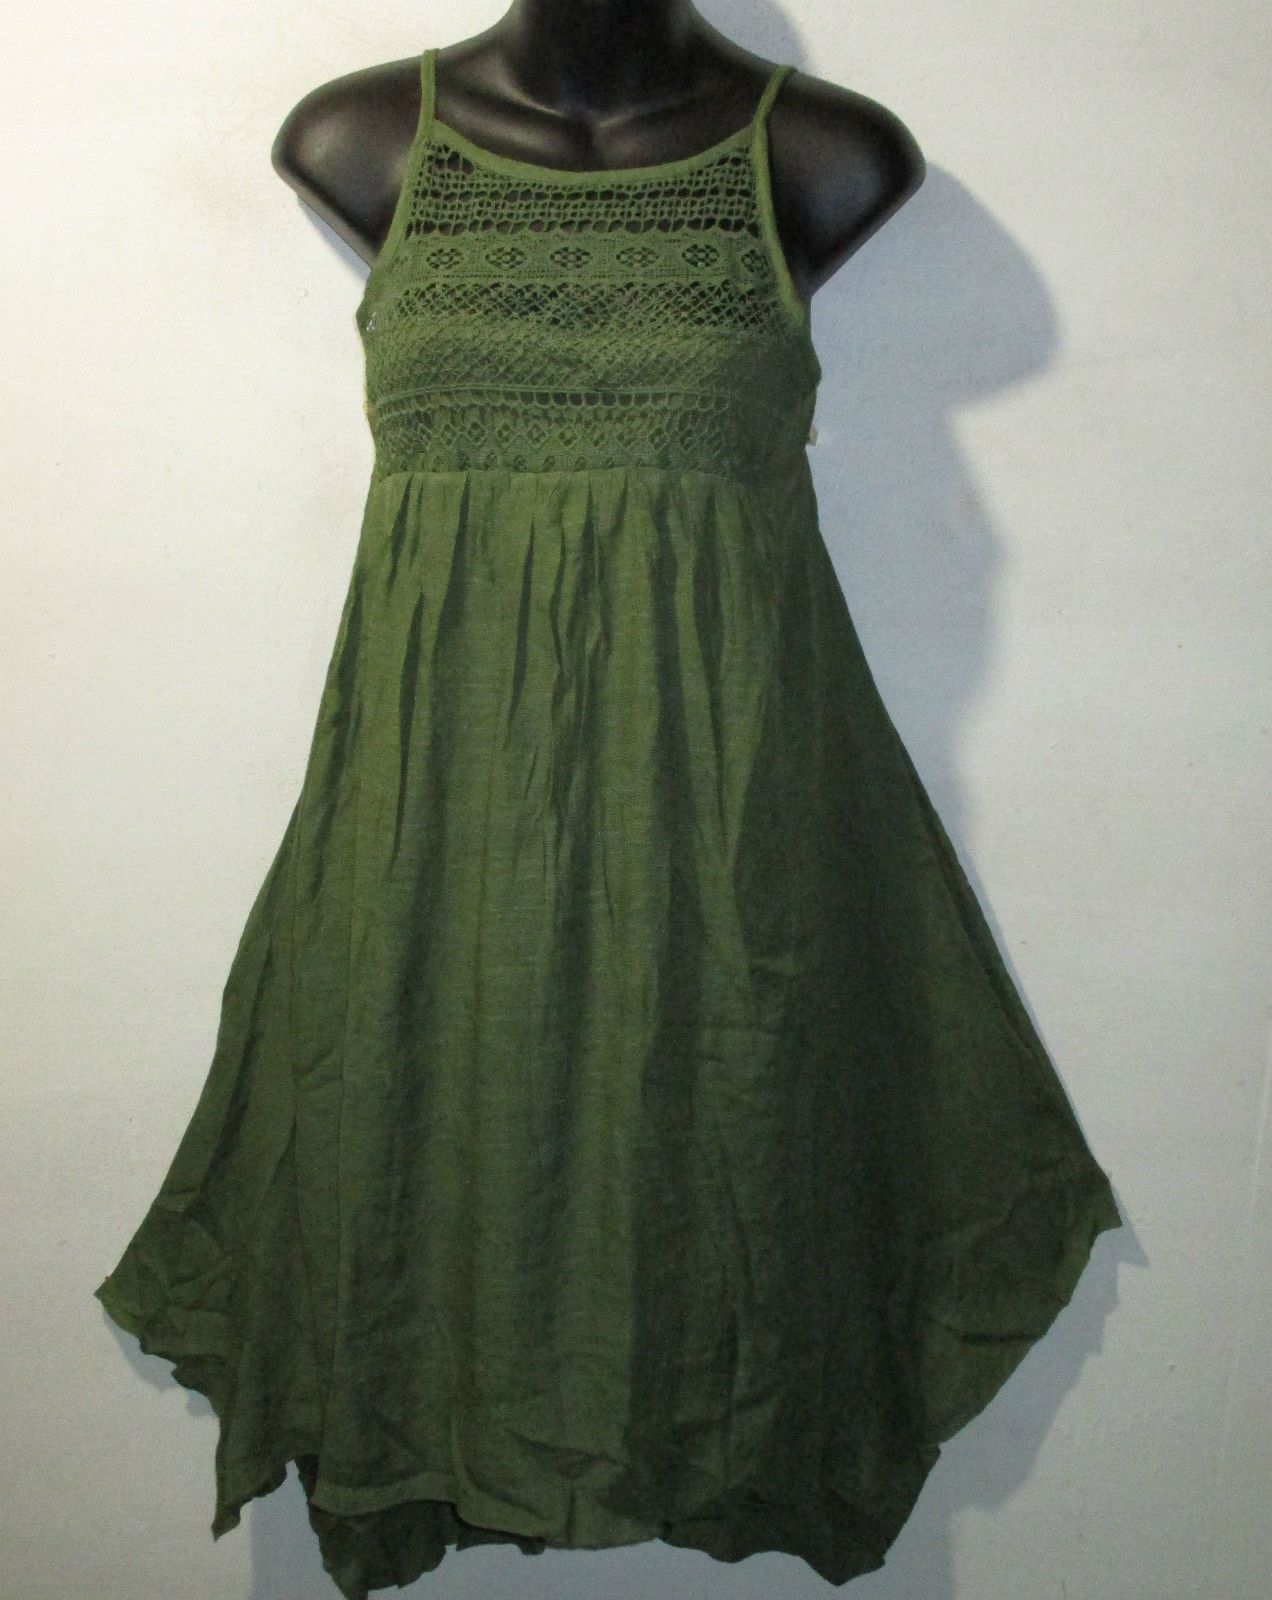 Dress x plus sundress green crochet lace chest racer back shark